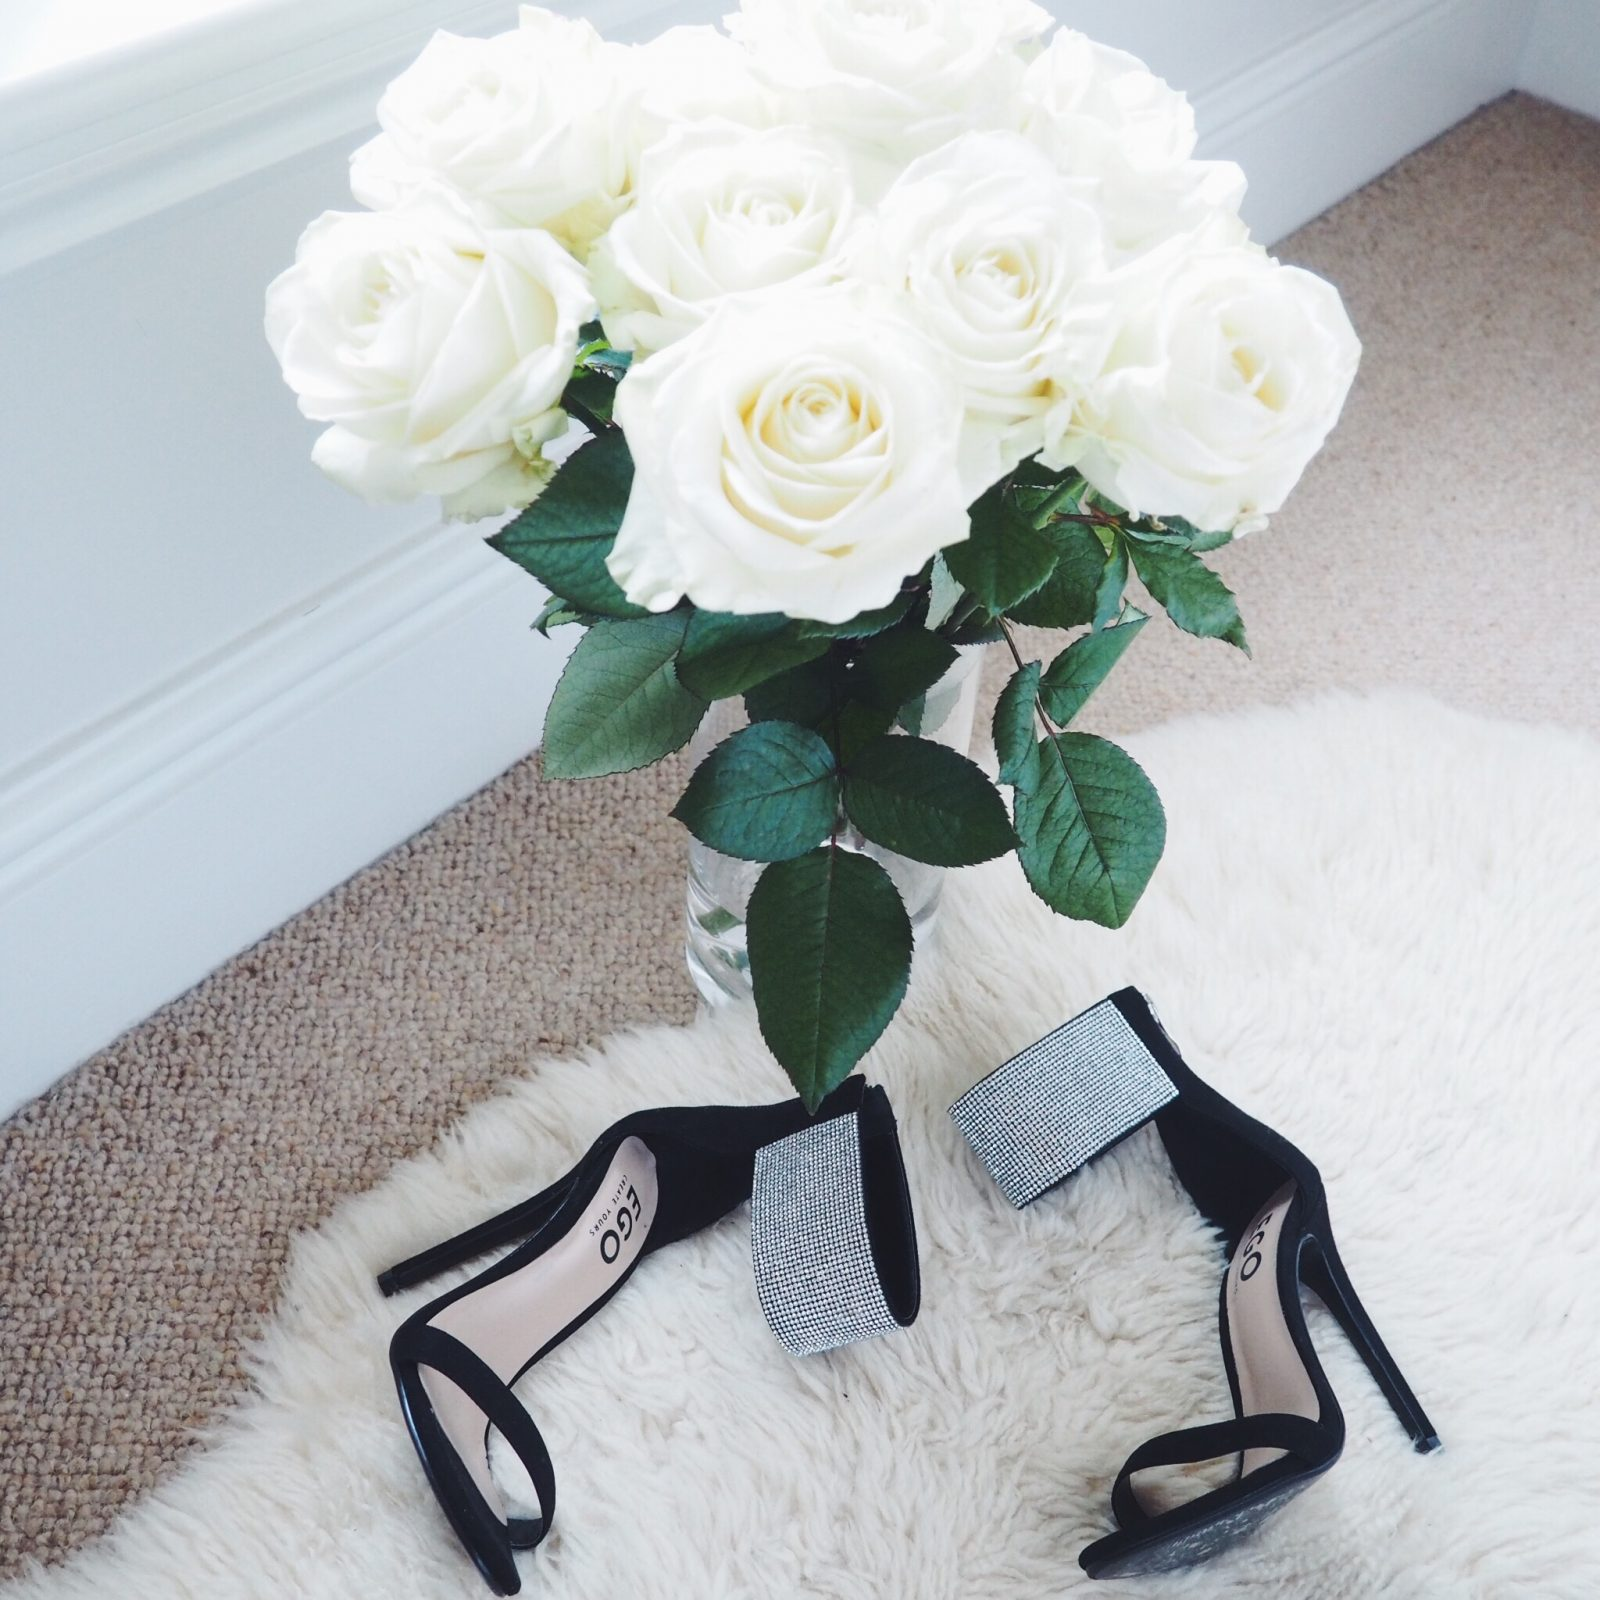 White roses and high heels